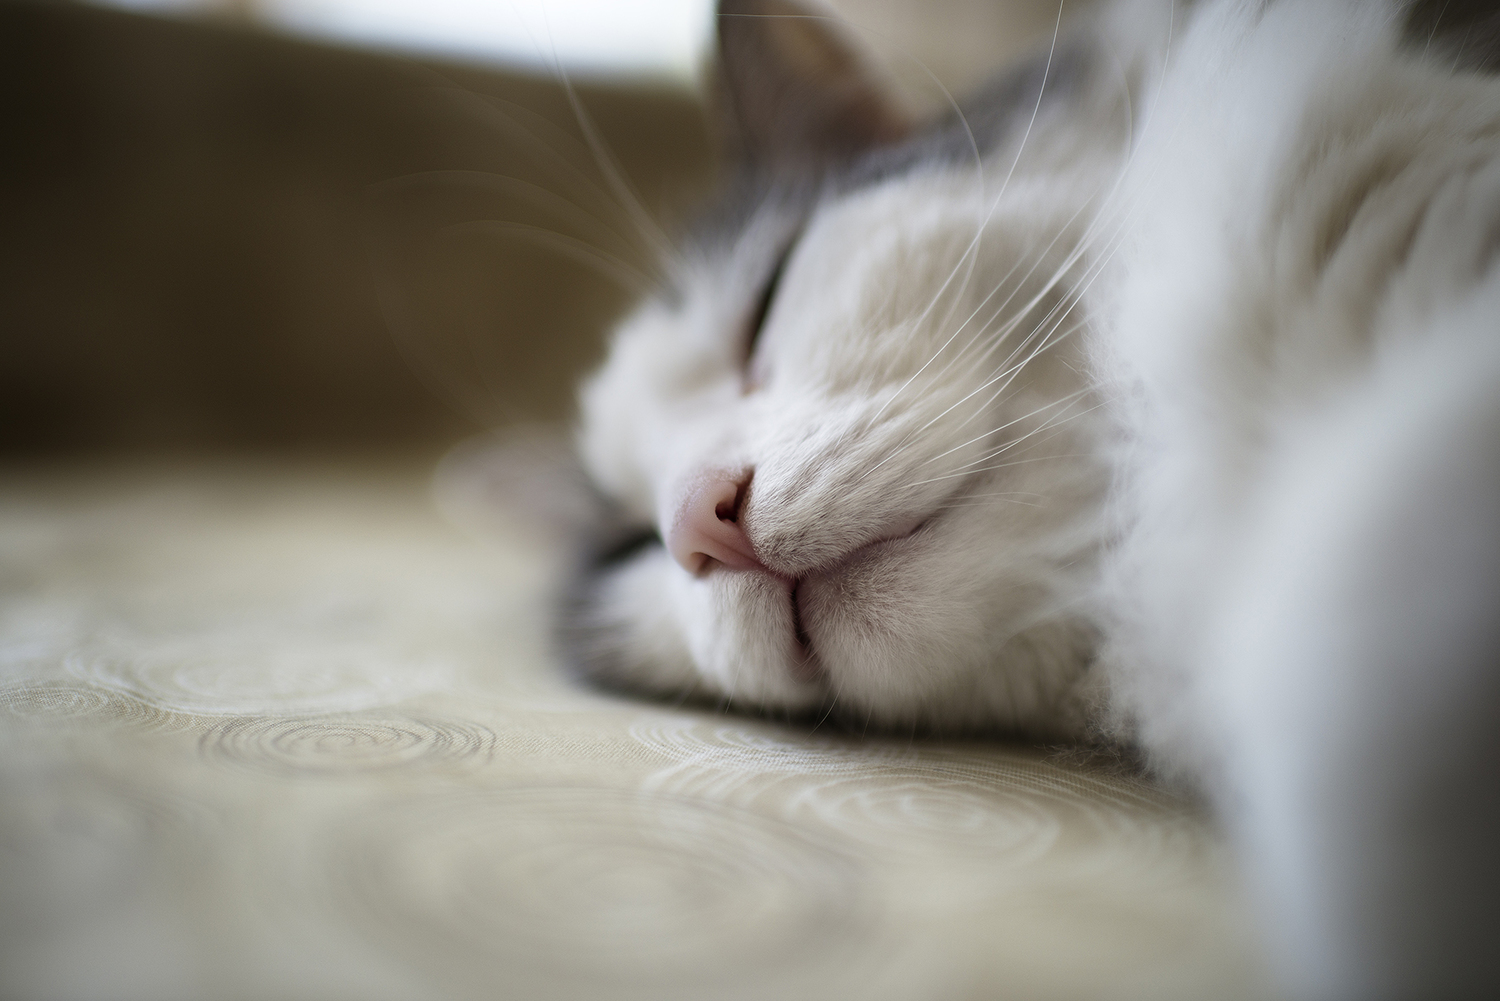 cat-sleeping-napping-on-couch-cat-photographer.jpg